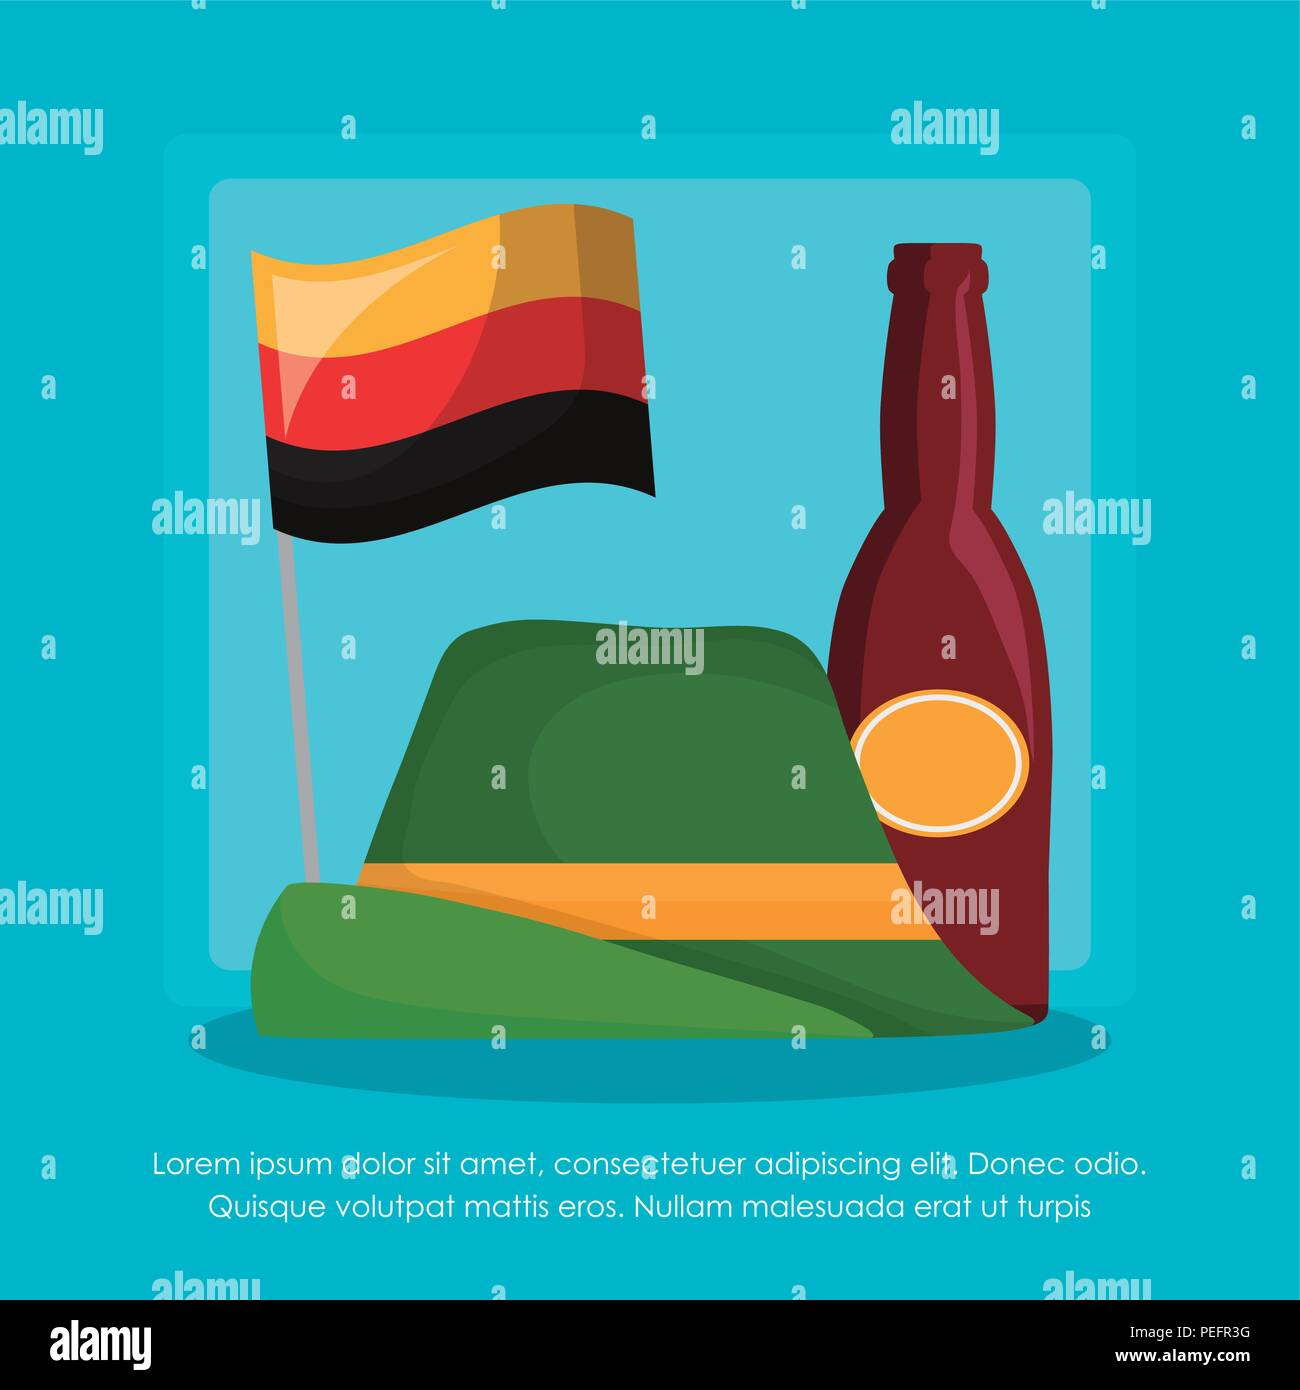 oktoberfest infographic template with alpine hat and beer bottle icon over blue background, colorful design. vector illustration - Stock Image